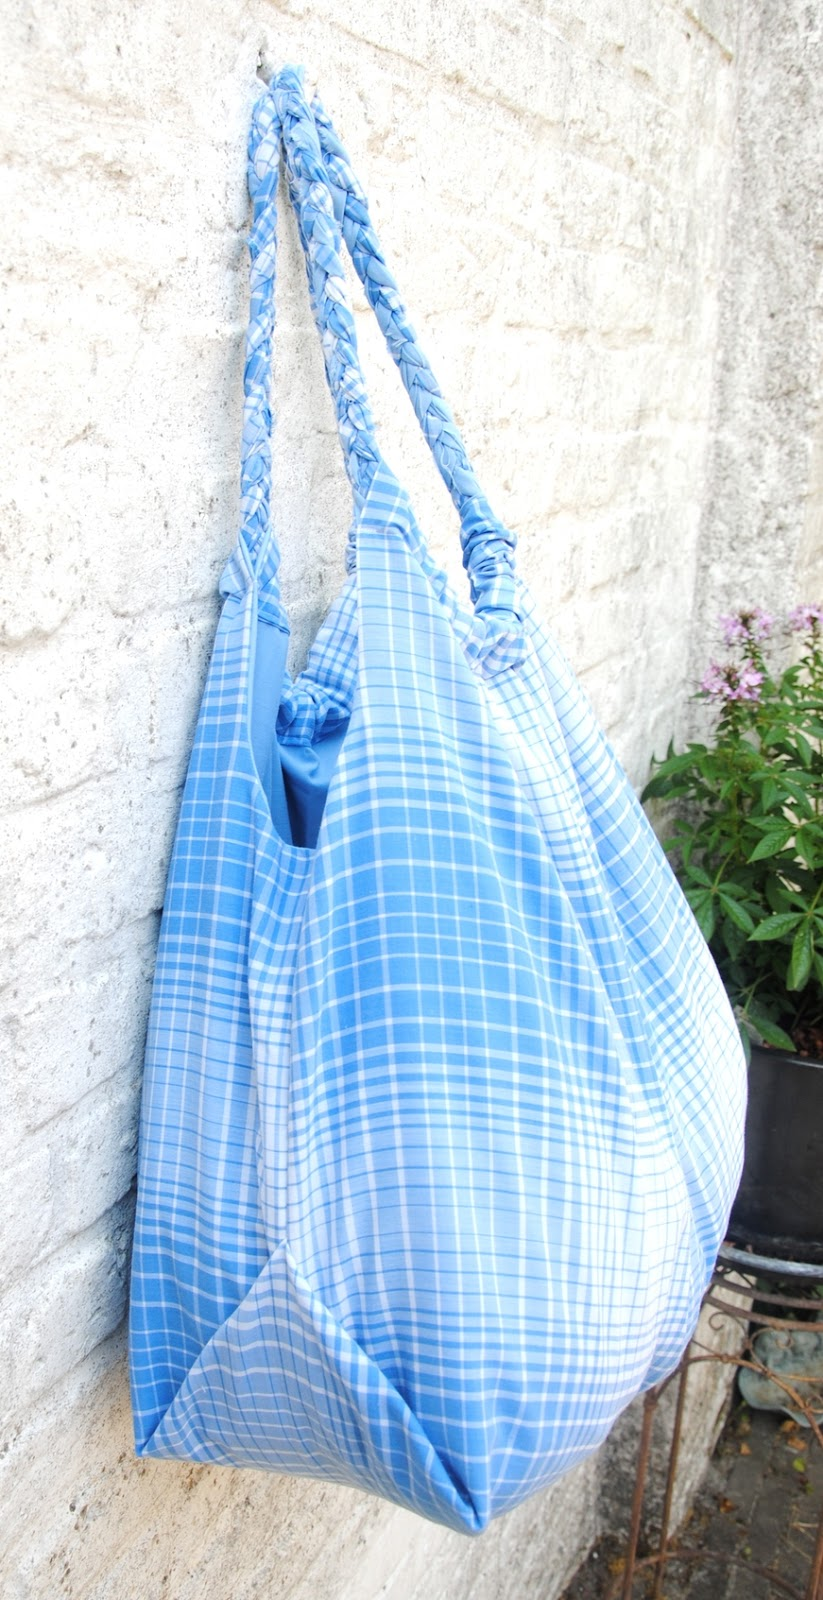 DIY Tutorial. How to sew a big bag of fabric.